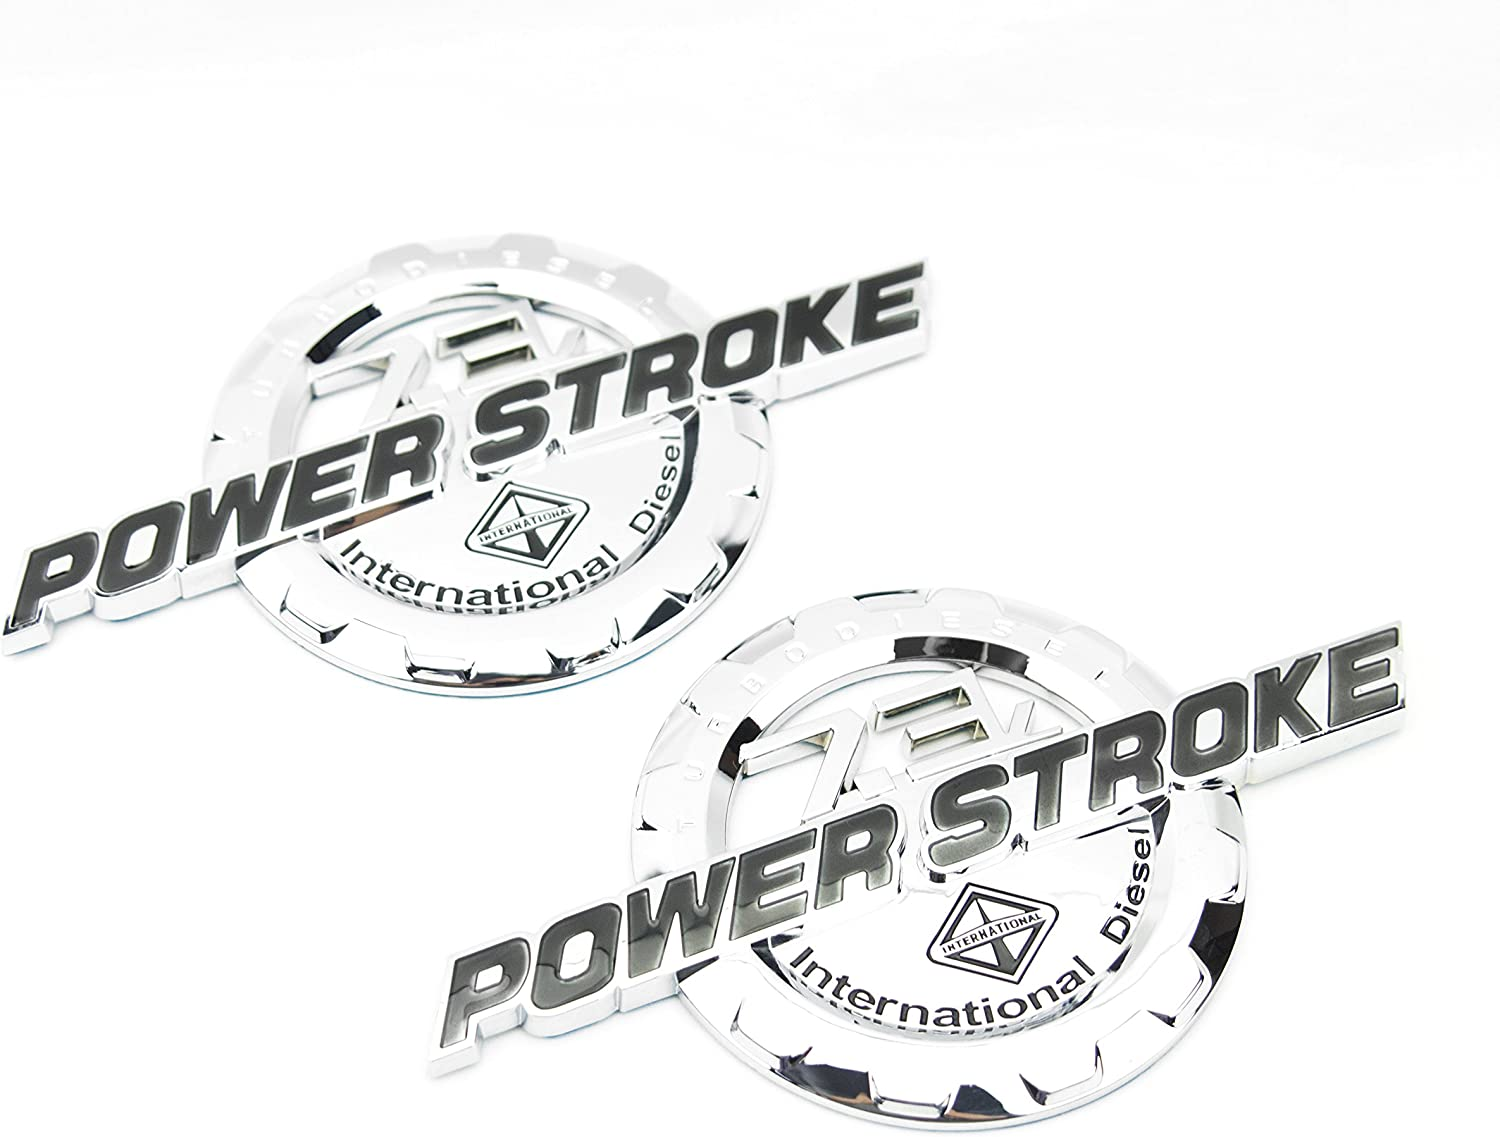 2 NEW CHROME FORD CUSTOM 7.3L F250 F350 POWERSTROKE INTERNATIONAL DOOR BADGES EMBLEMS SET PAIR